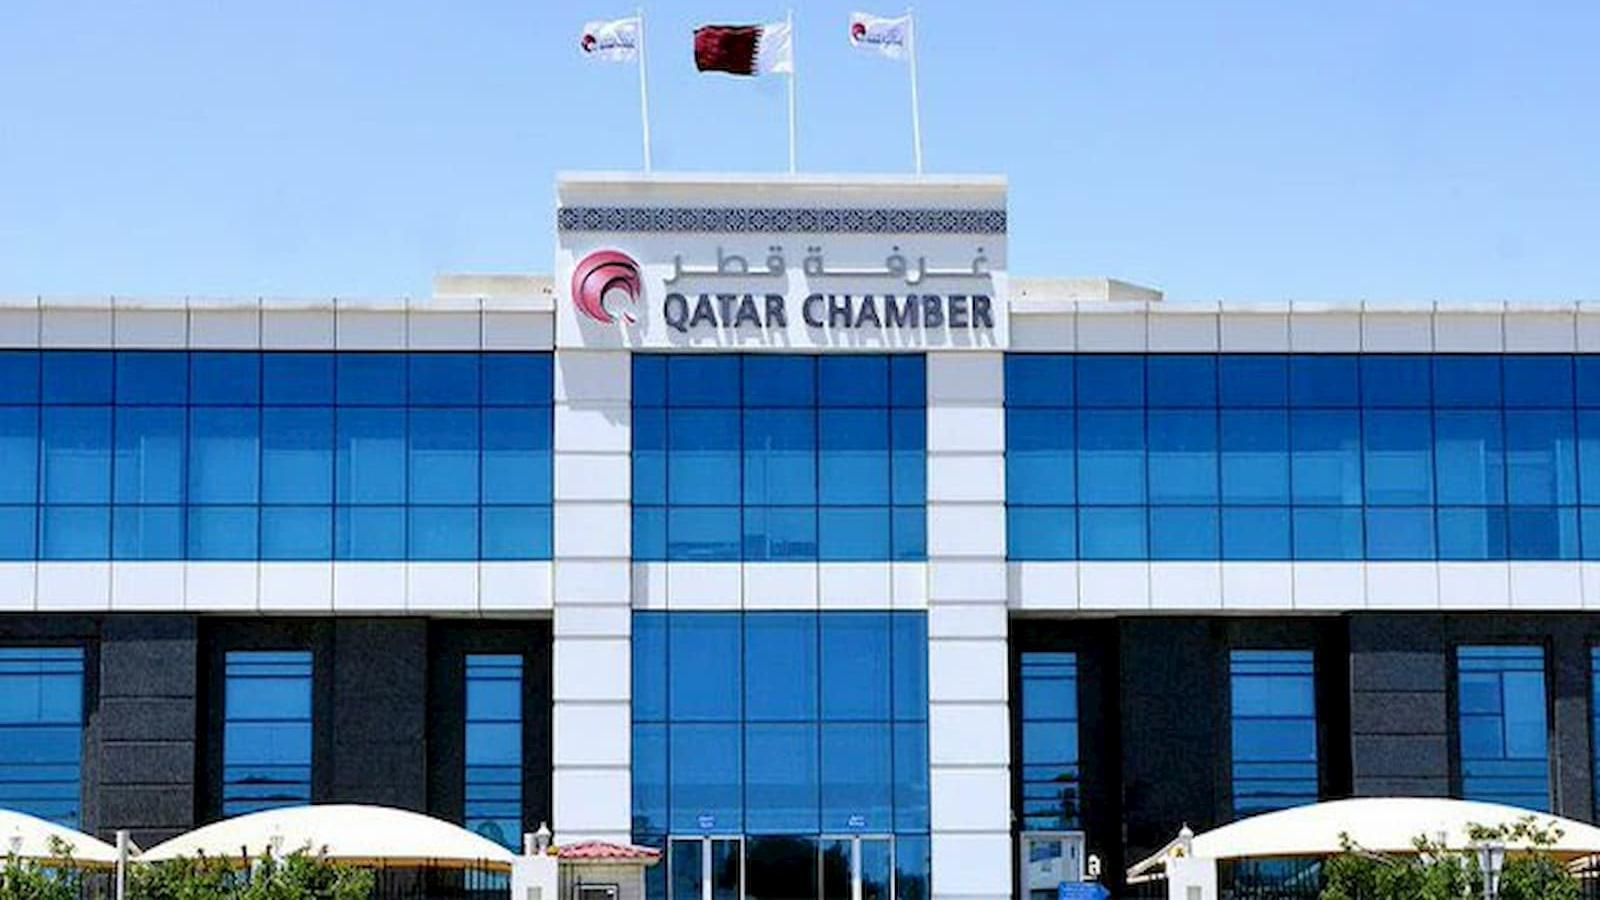 Provoking Muslims' sentiments harms trade ties: Qatar Chamber